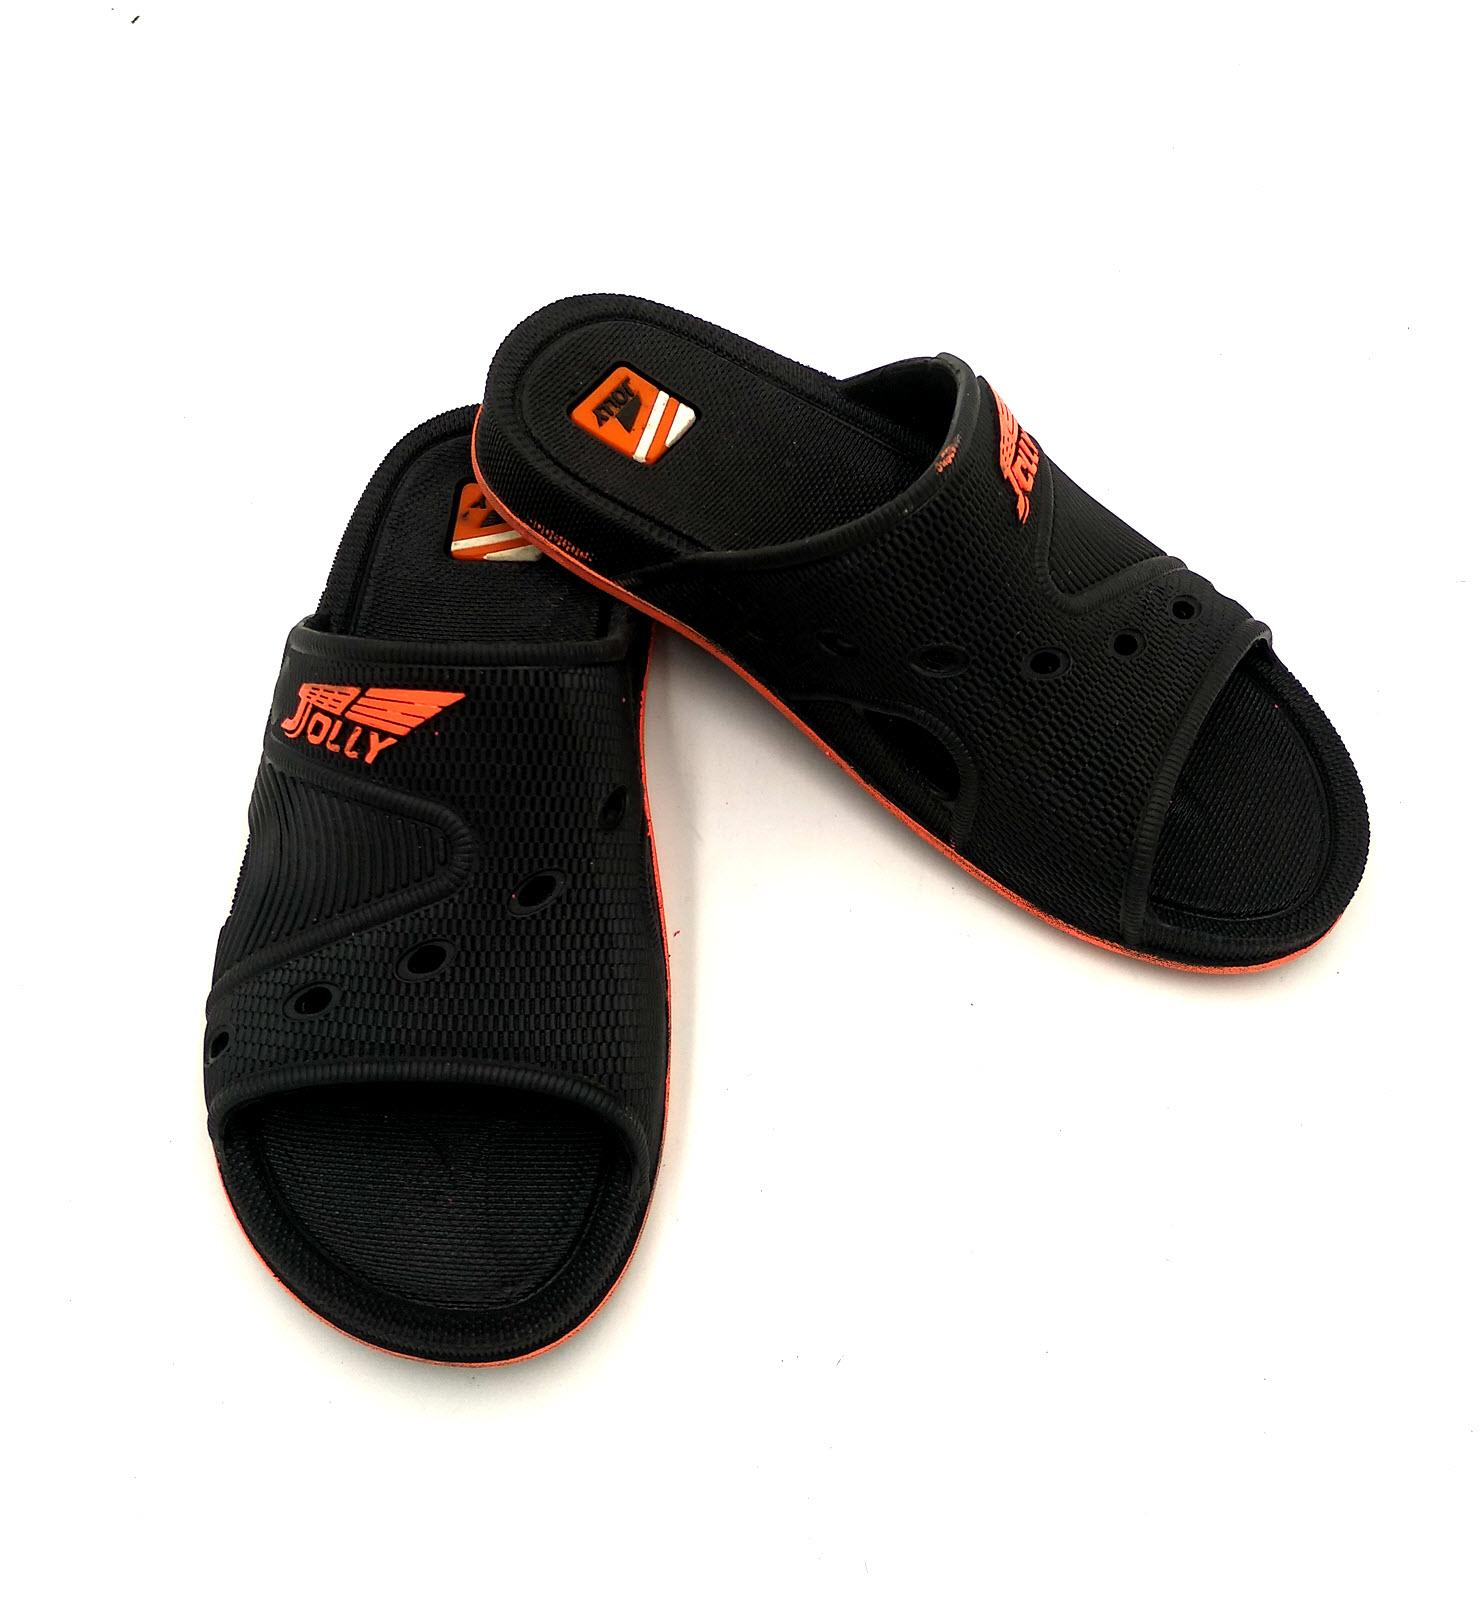 new products 0ac12 d4ab0 Men's Sandals & Slippers Online - Daraz Pakistan